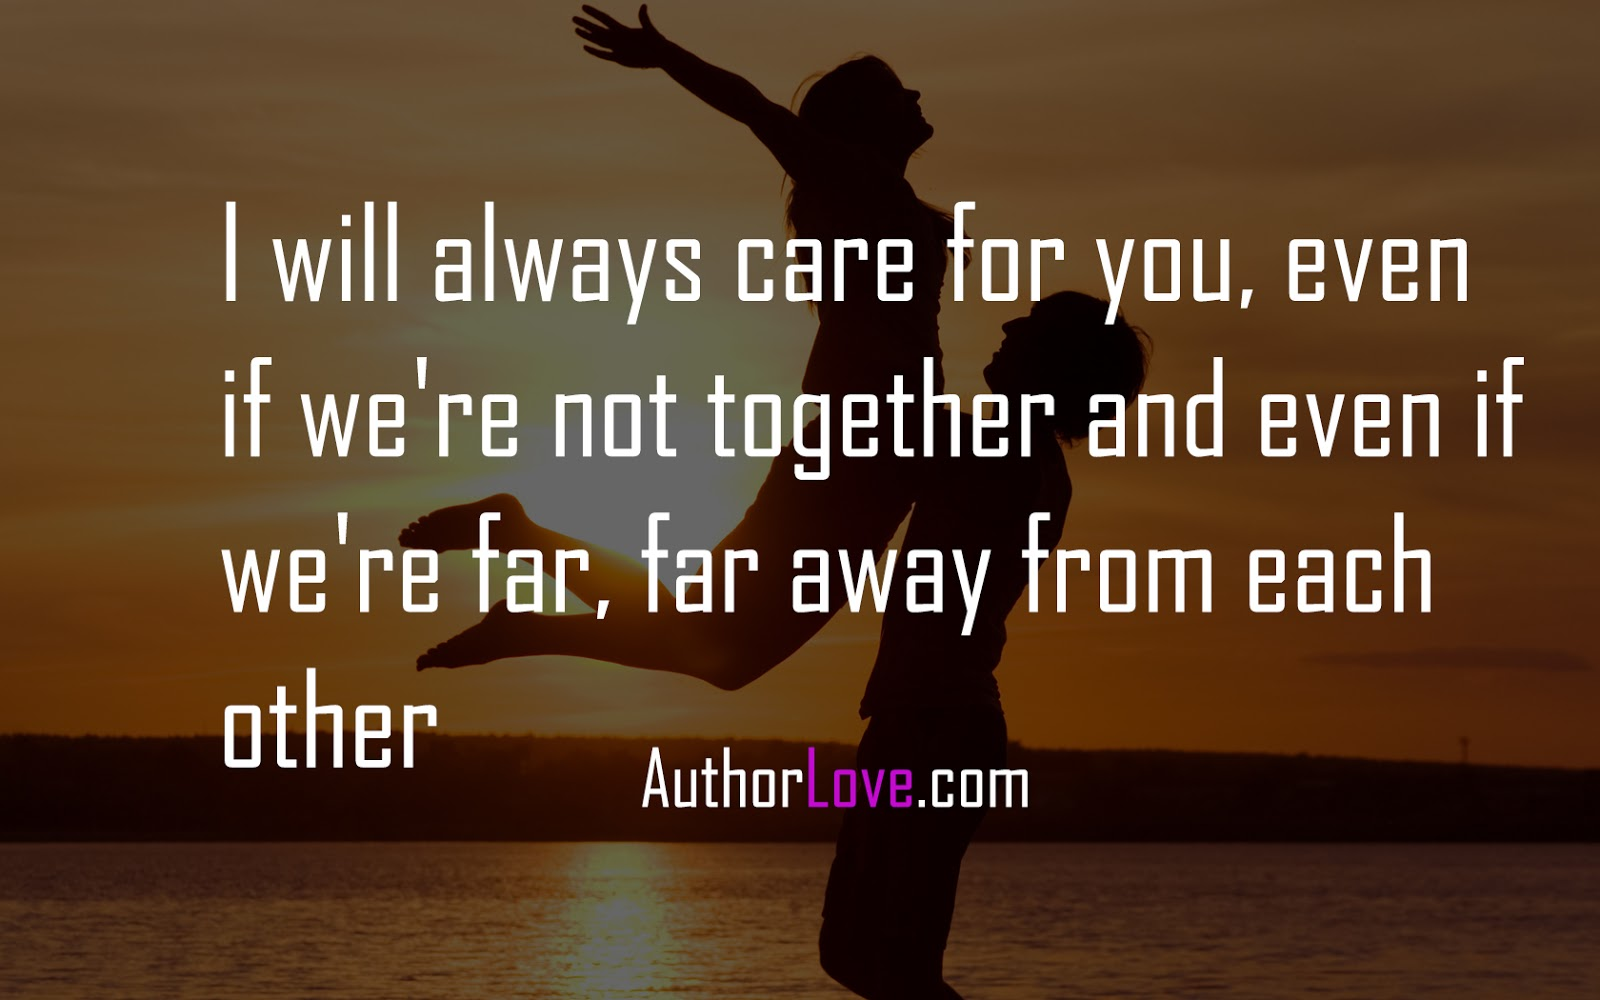 ... were not together and even if were far, far away from each other